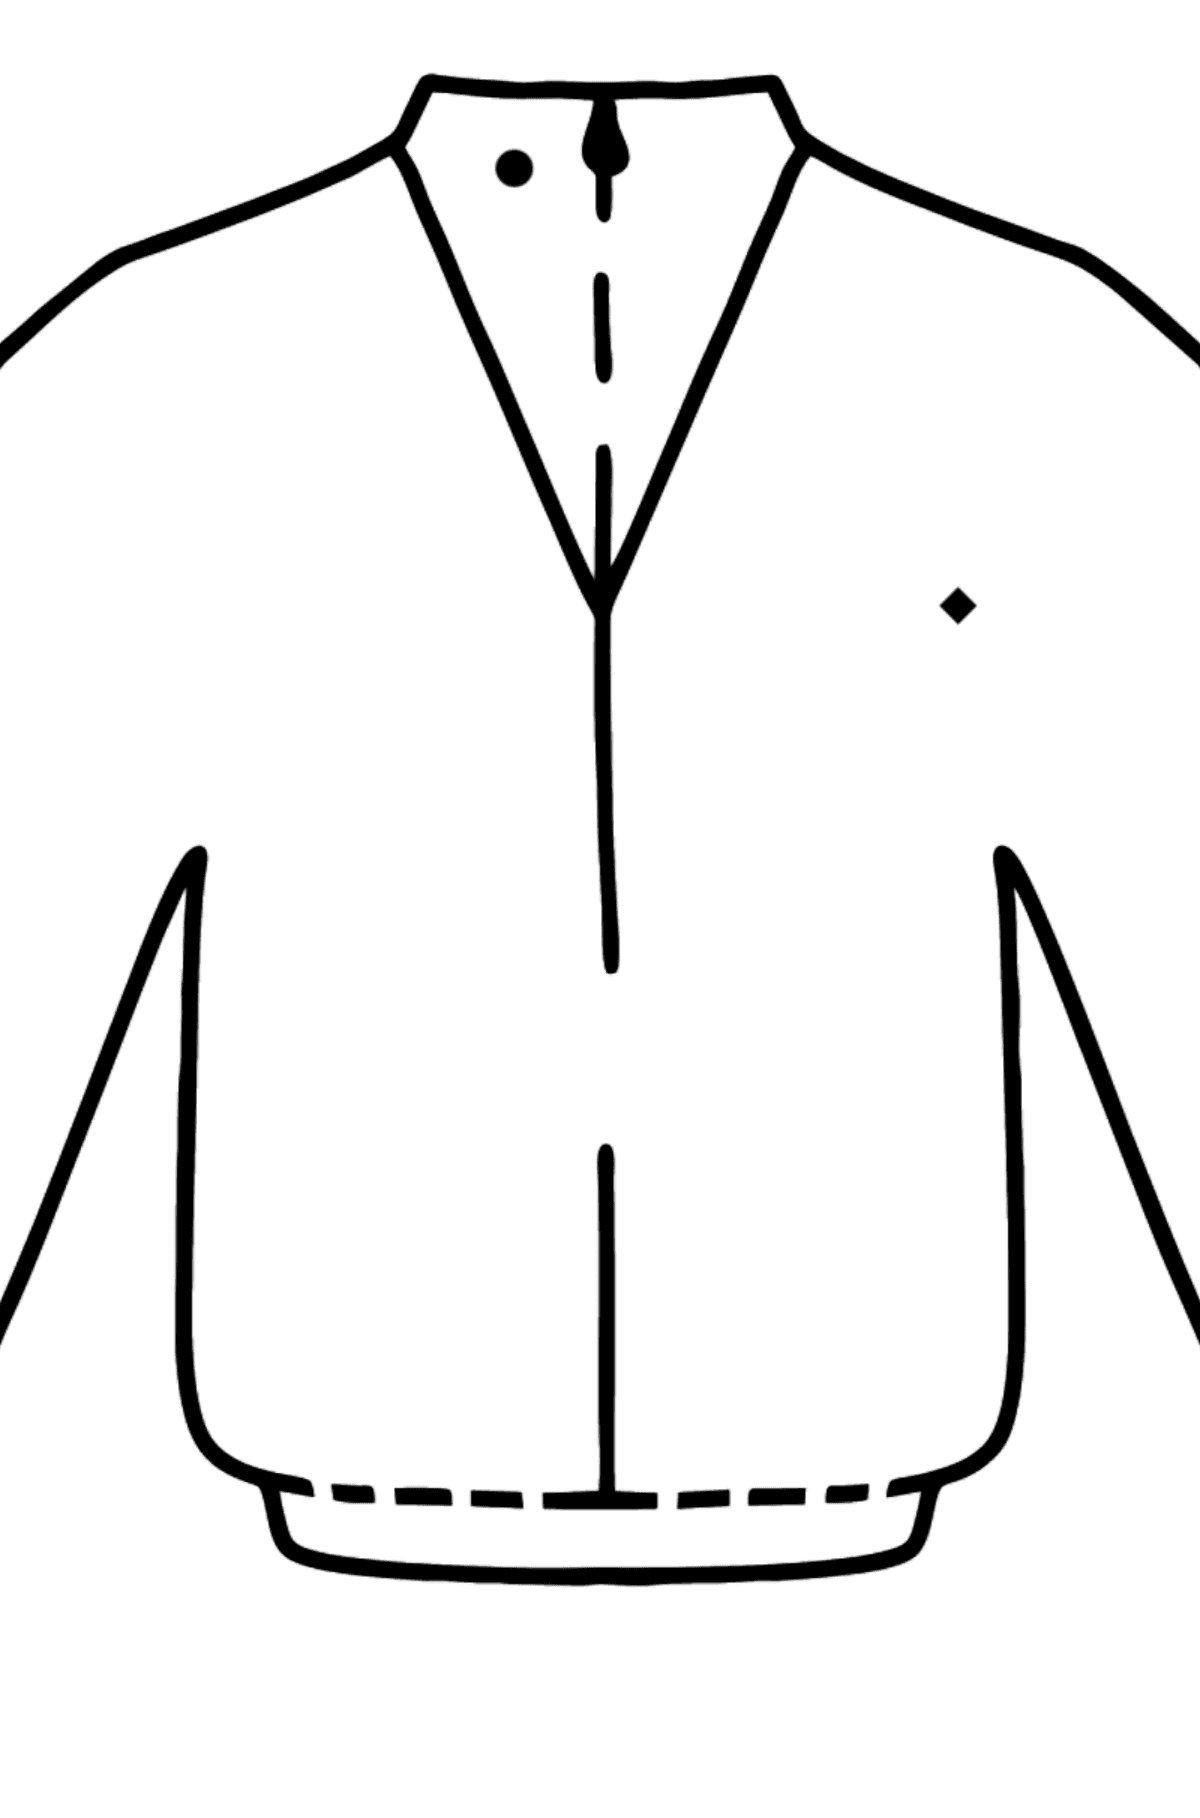 Blue Jacket coloring page - Coloring by Symbols for Kids